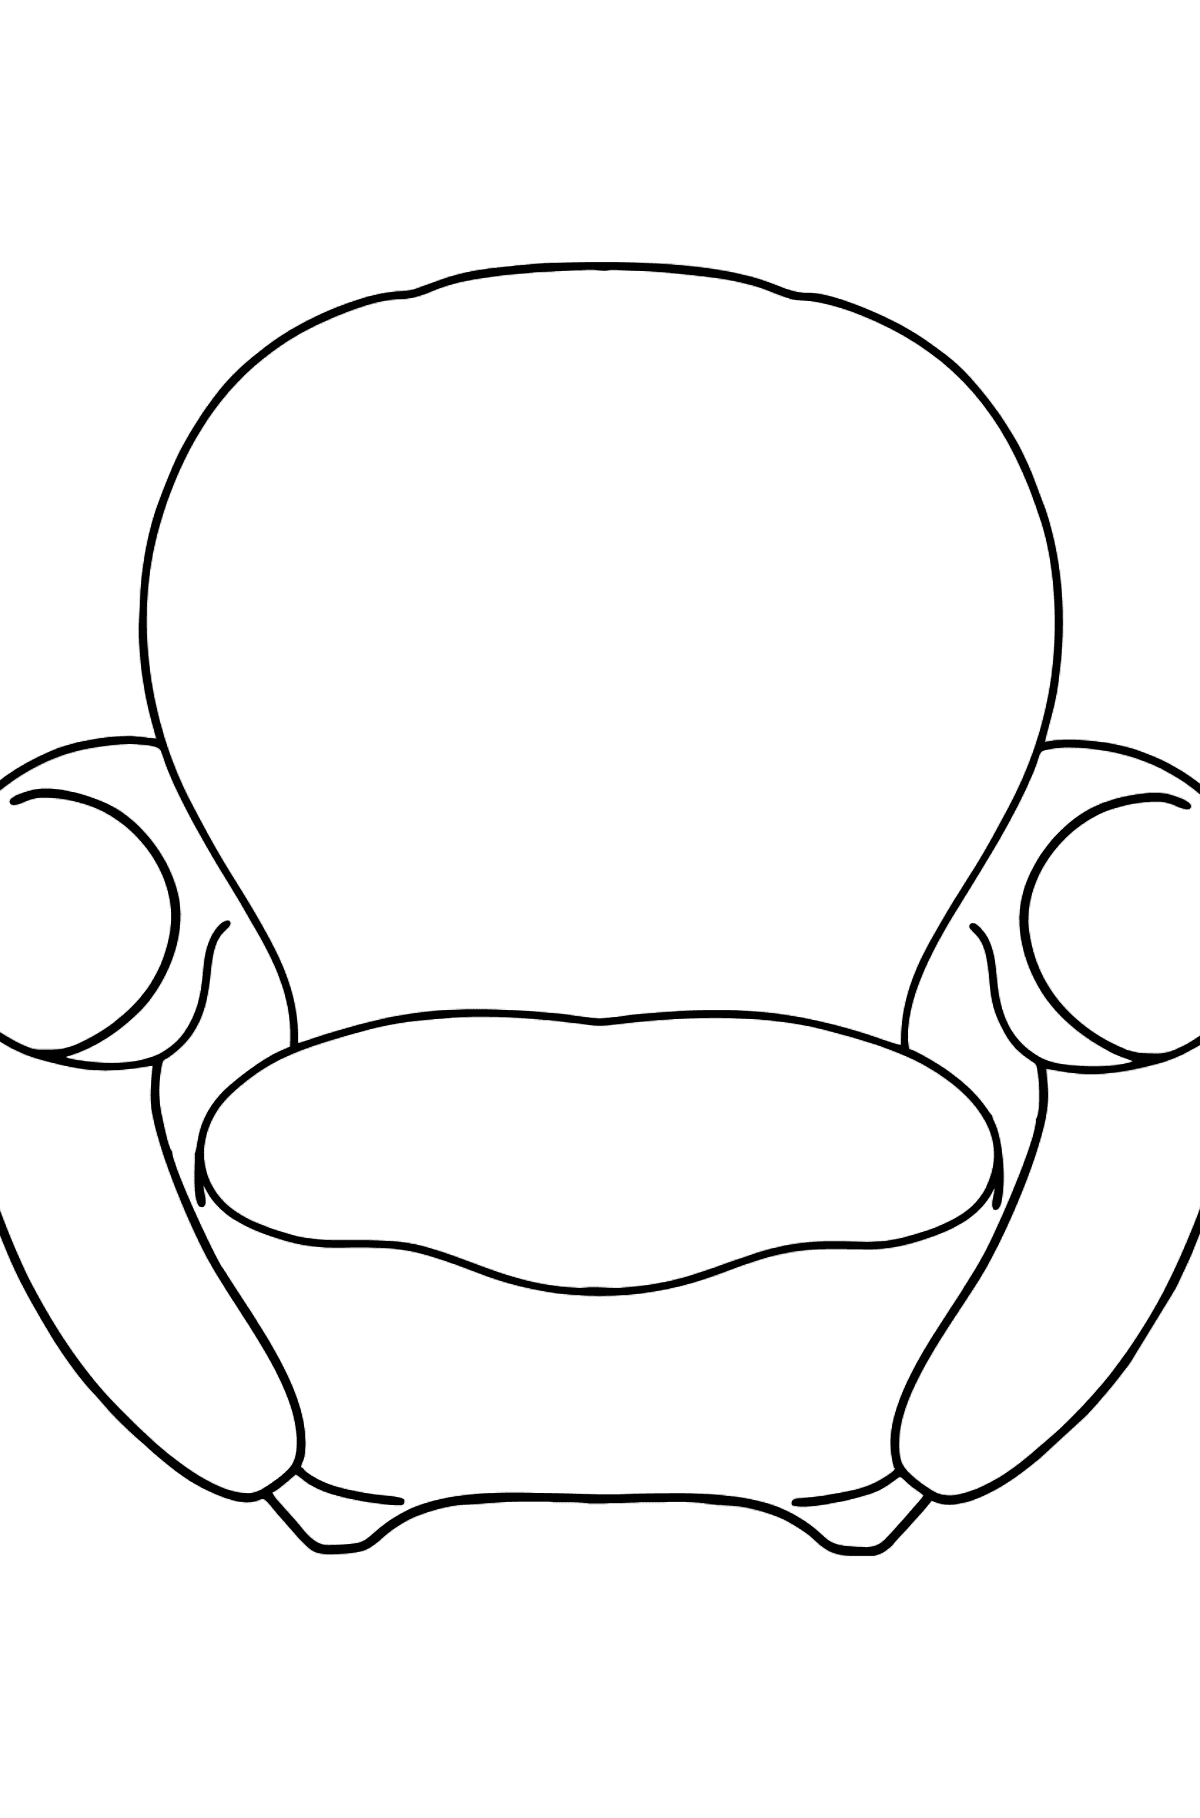 Chair coloring page - Coloring Pages for Kids